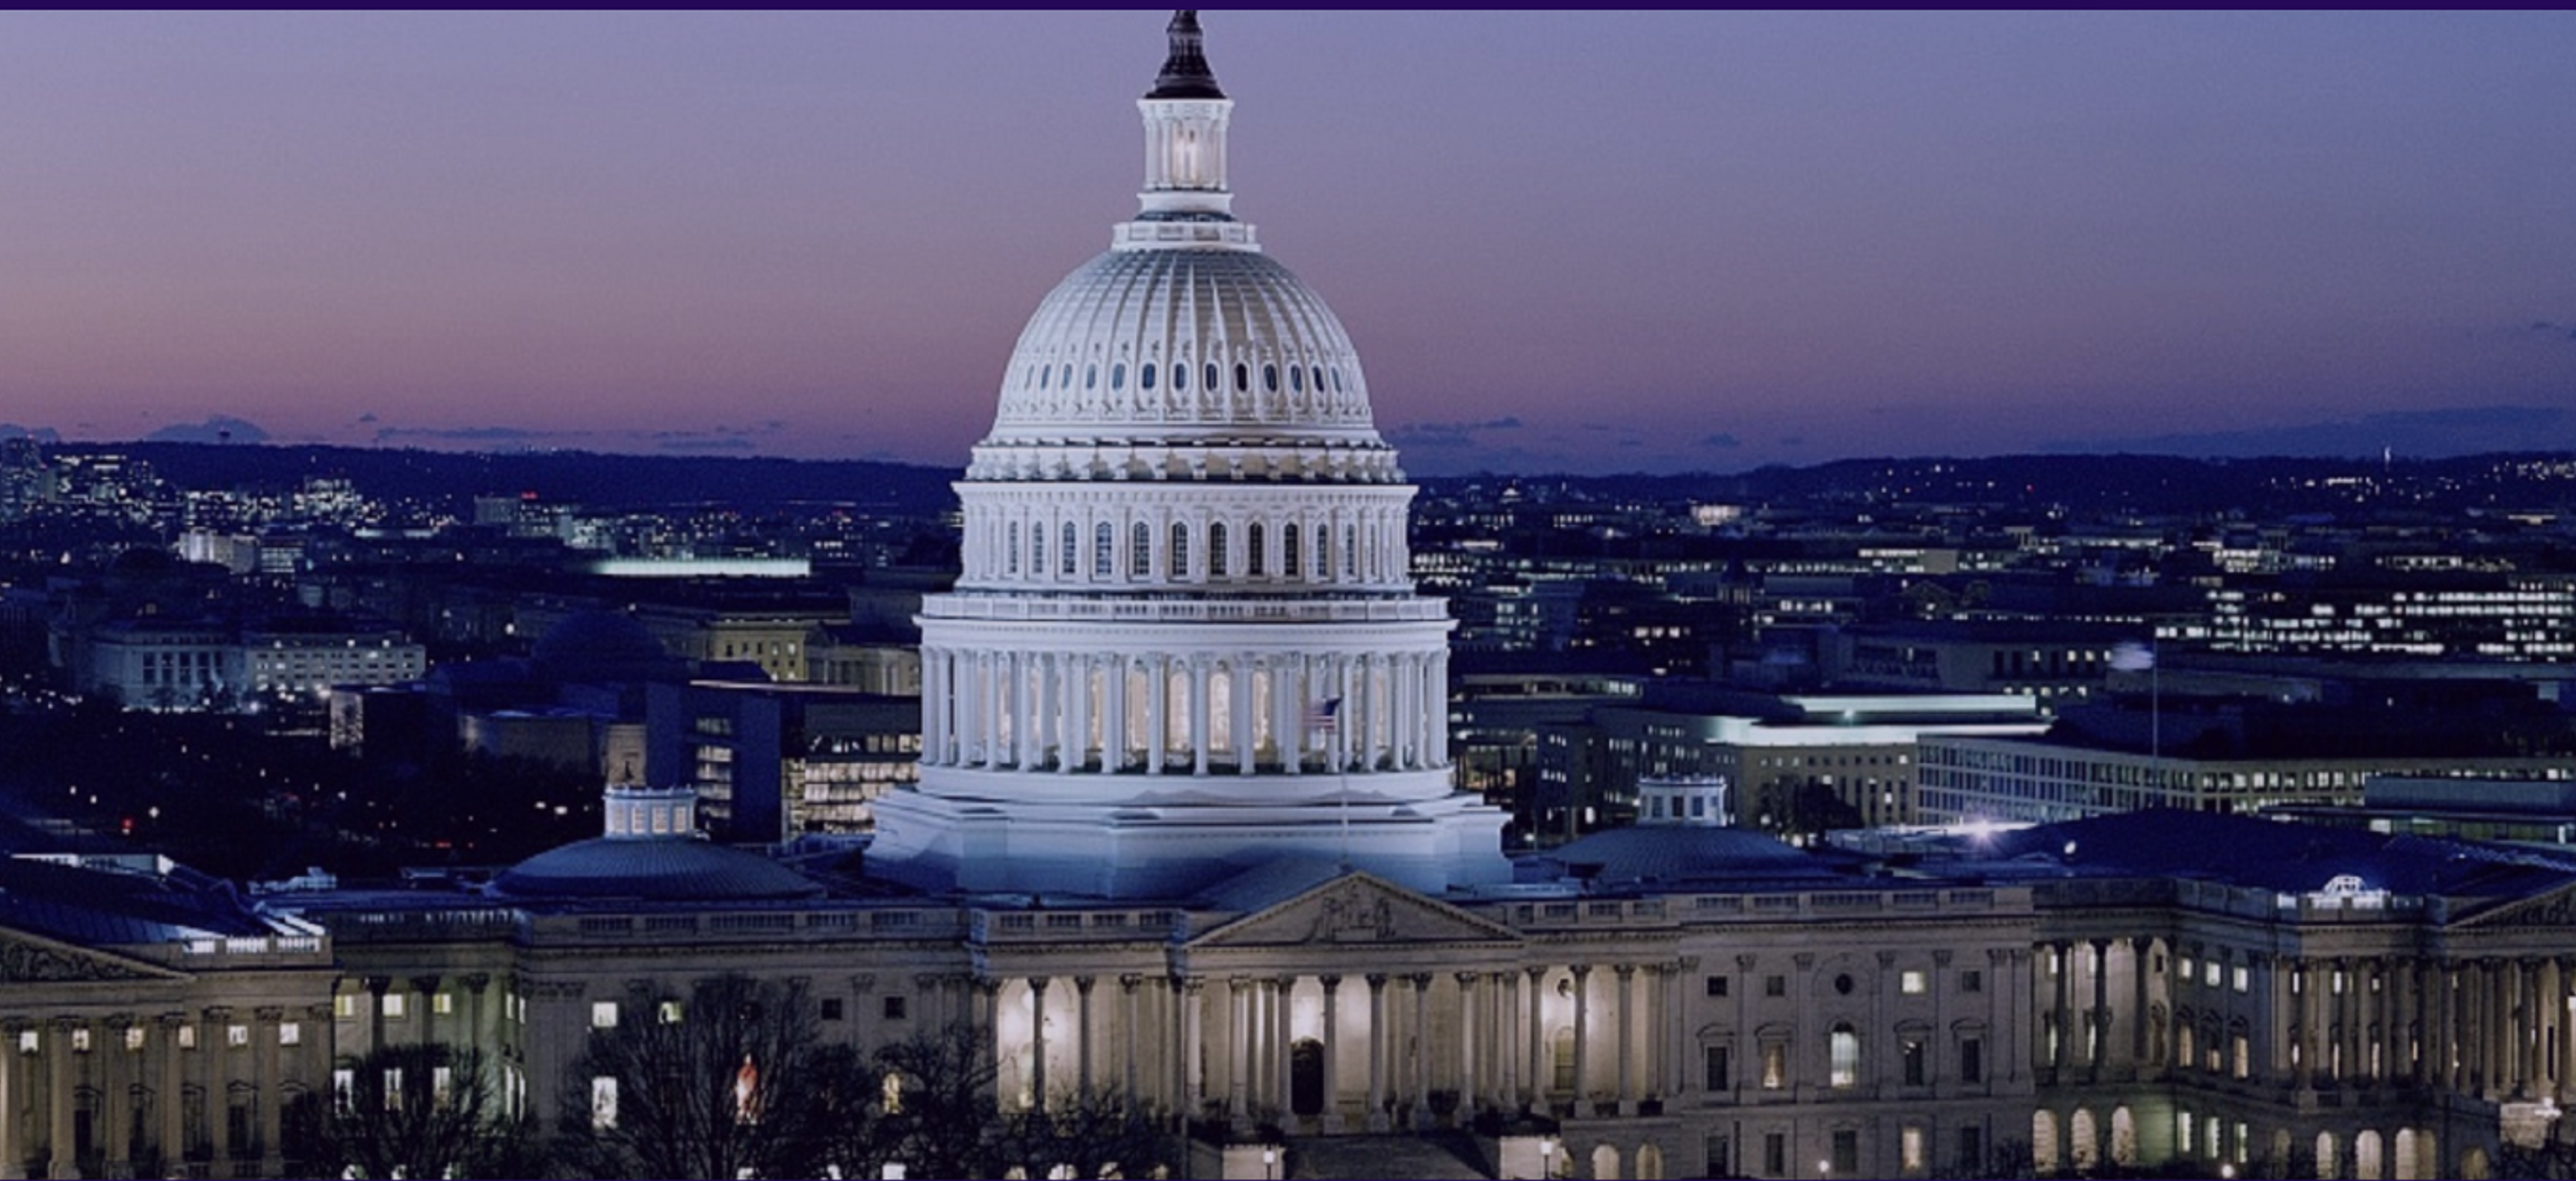 A photo of the U.S. Capitol at twilight, with a purple-blue gradient sky.